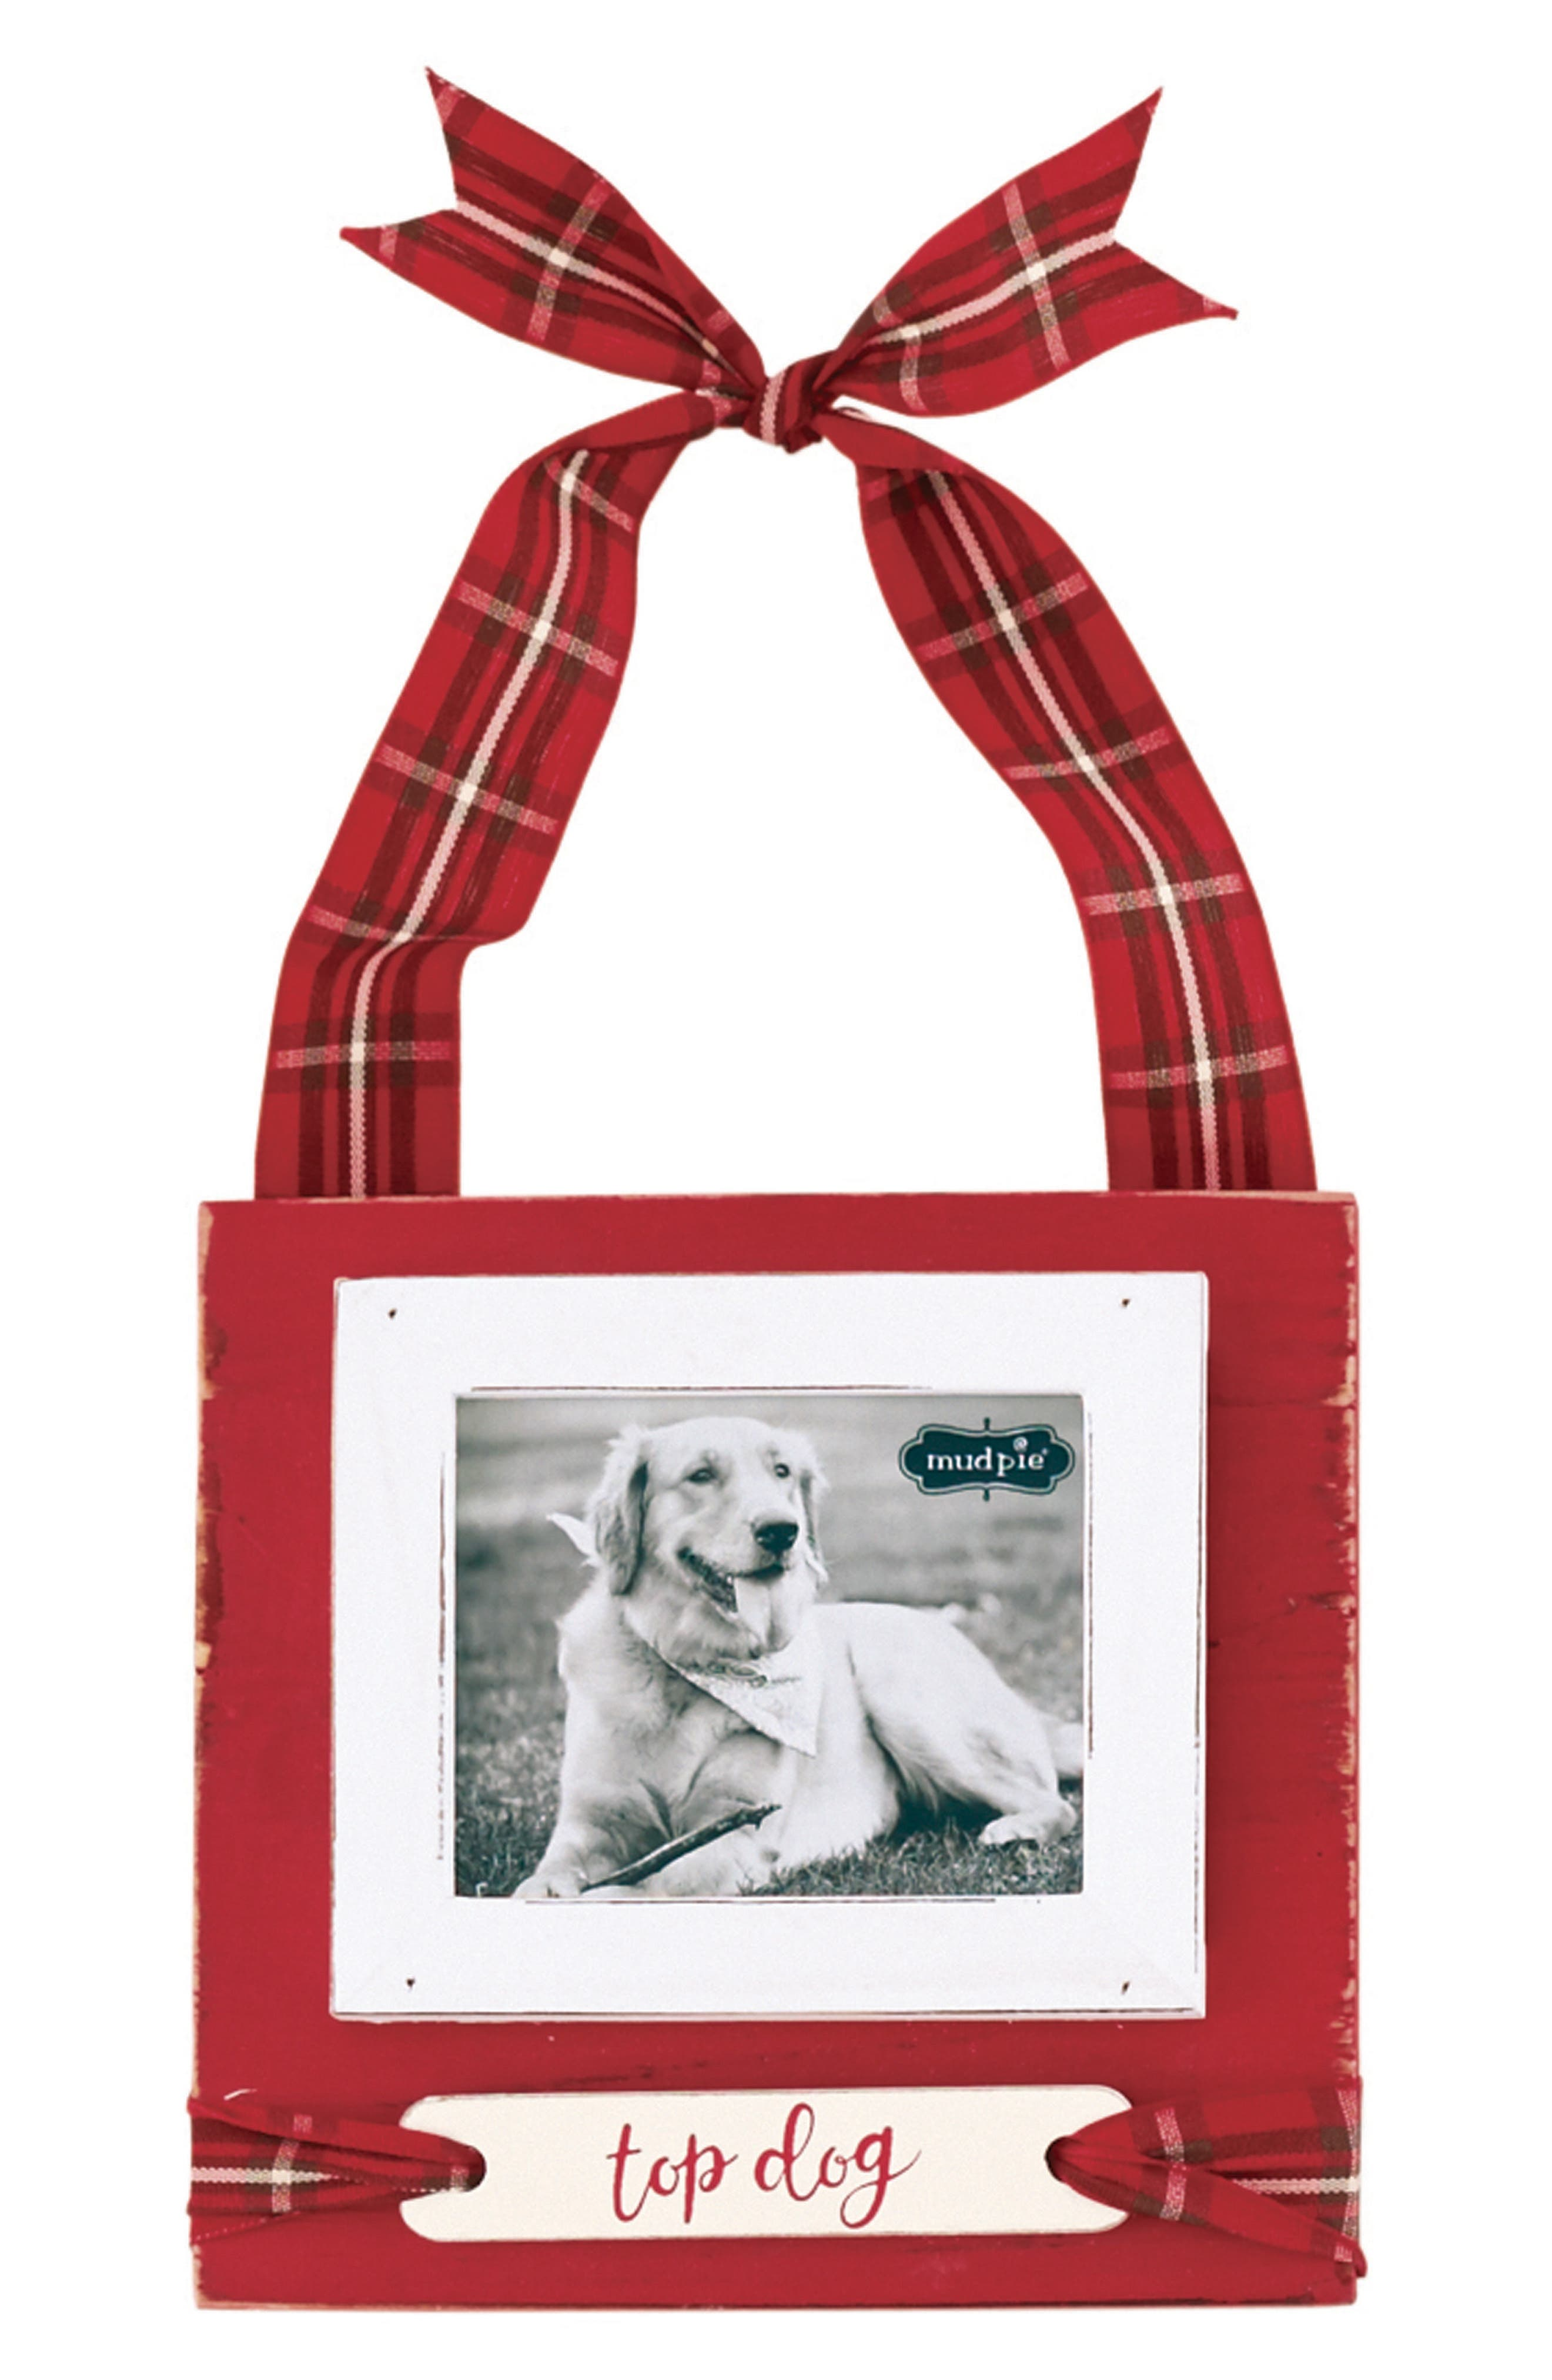 Alternate Image 1 Selected - Mud Pie Top Dog Frame Ornament